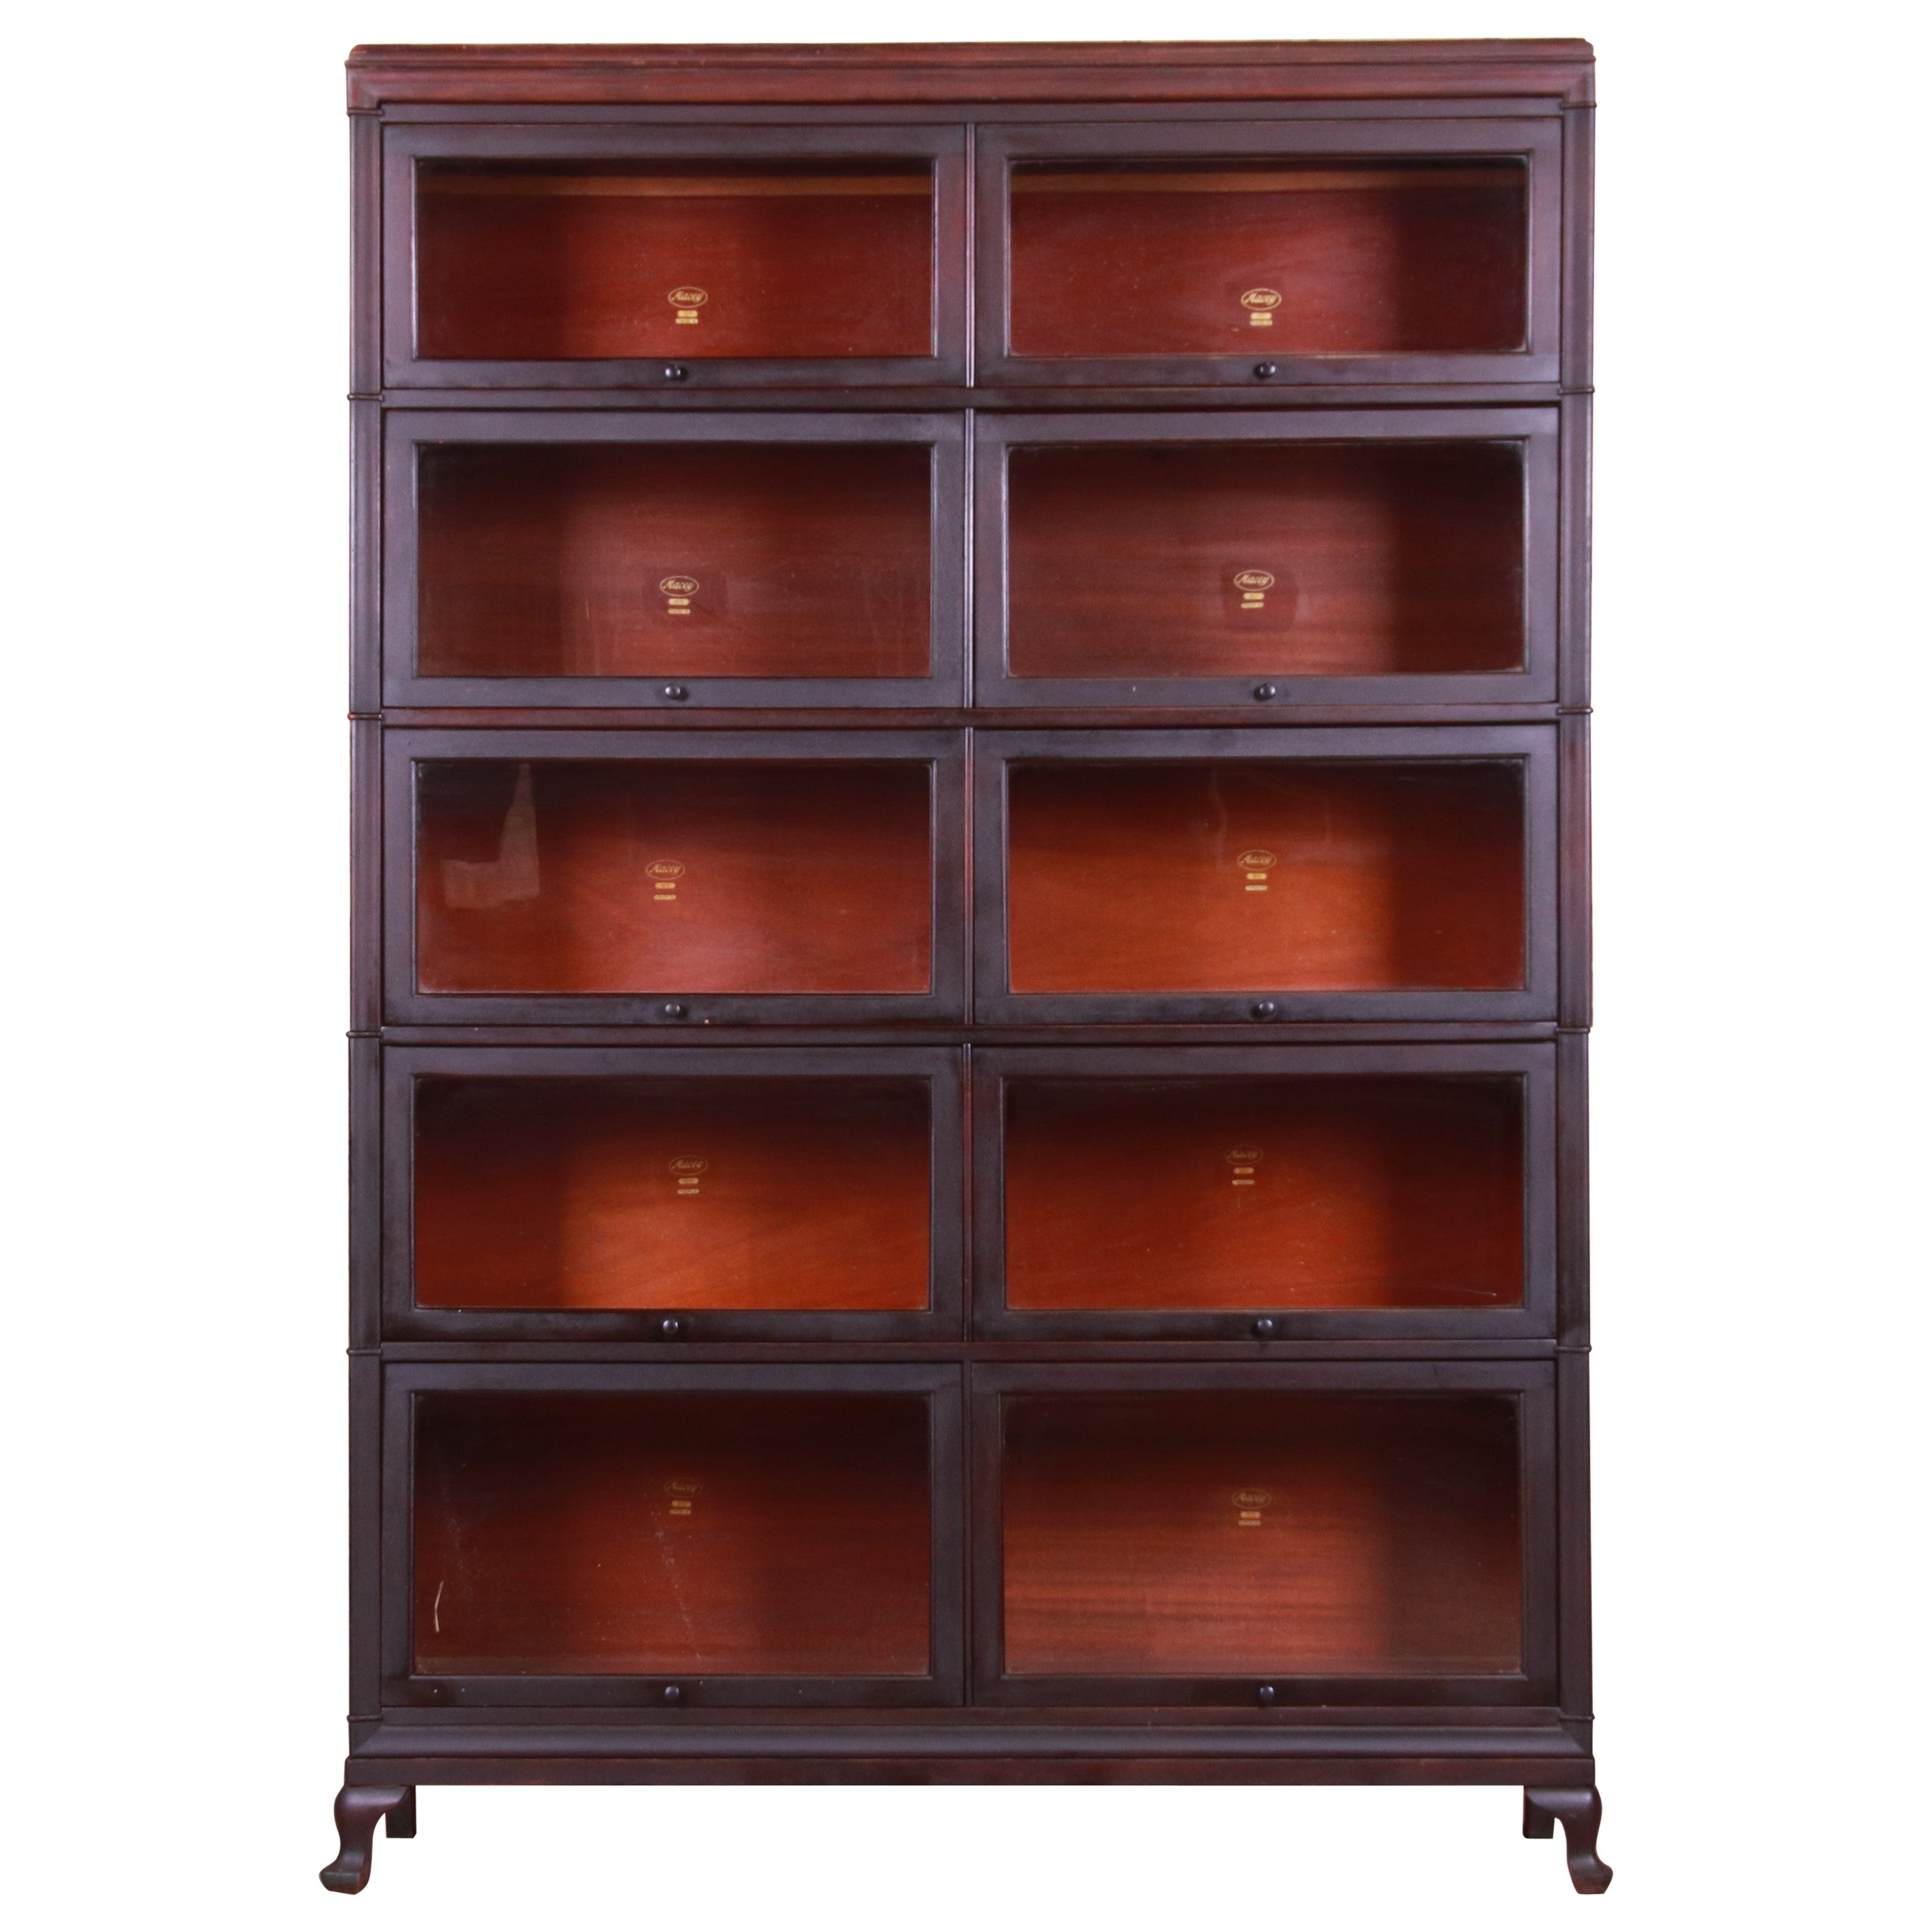 Antique Five Stack Double Barrister Bookcase by Macey, circa 1920s